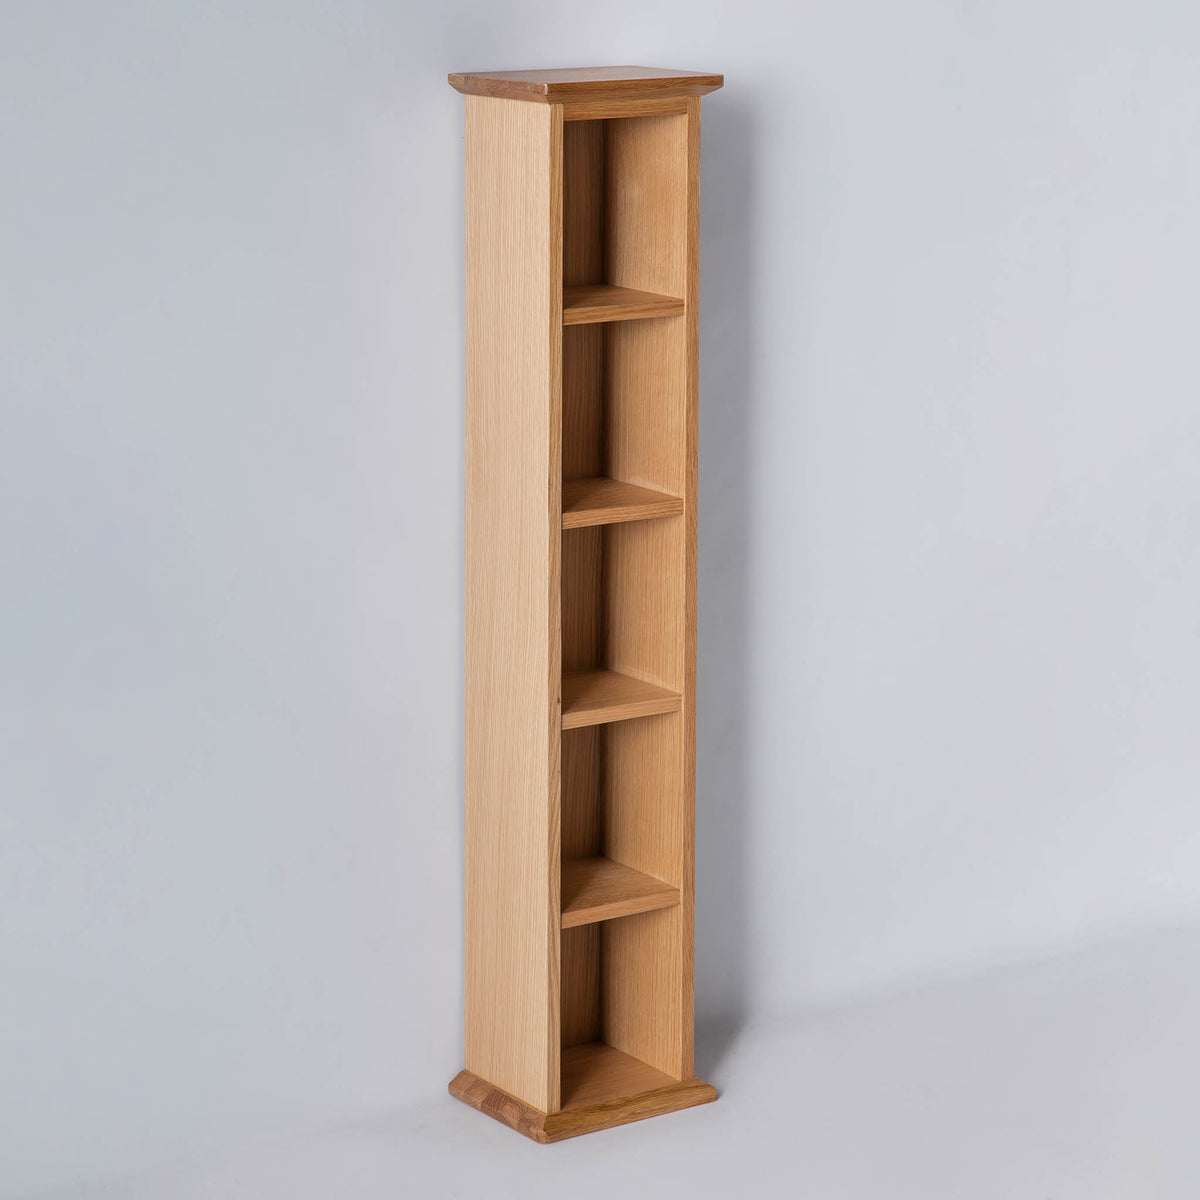 side view of the Light Oak Single DVD Tower